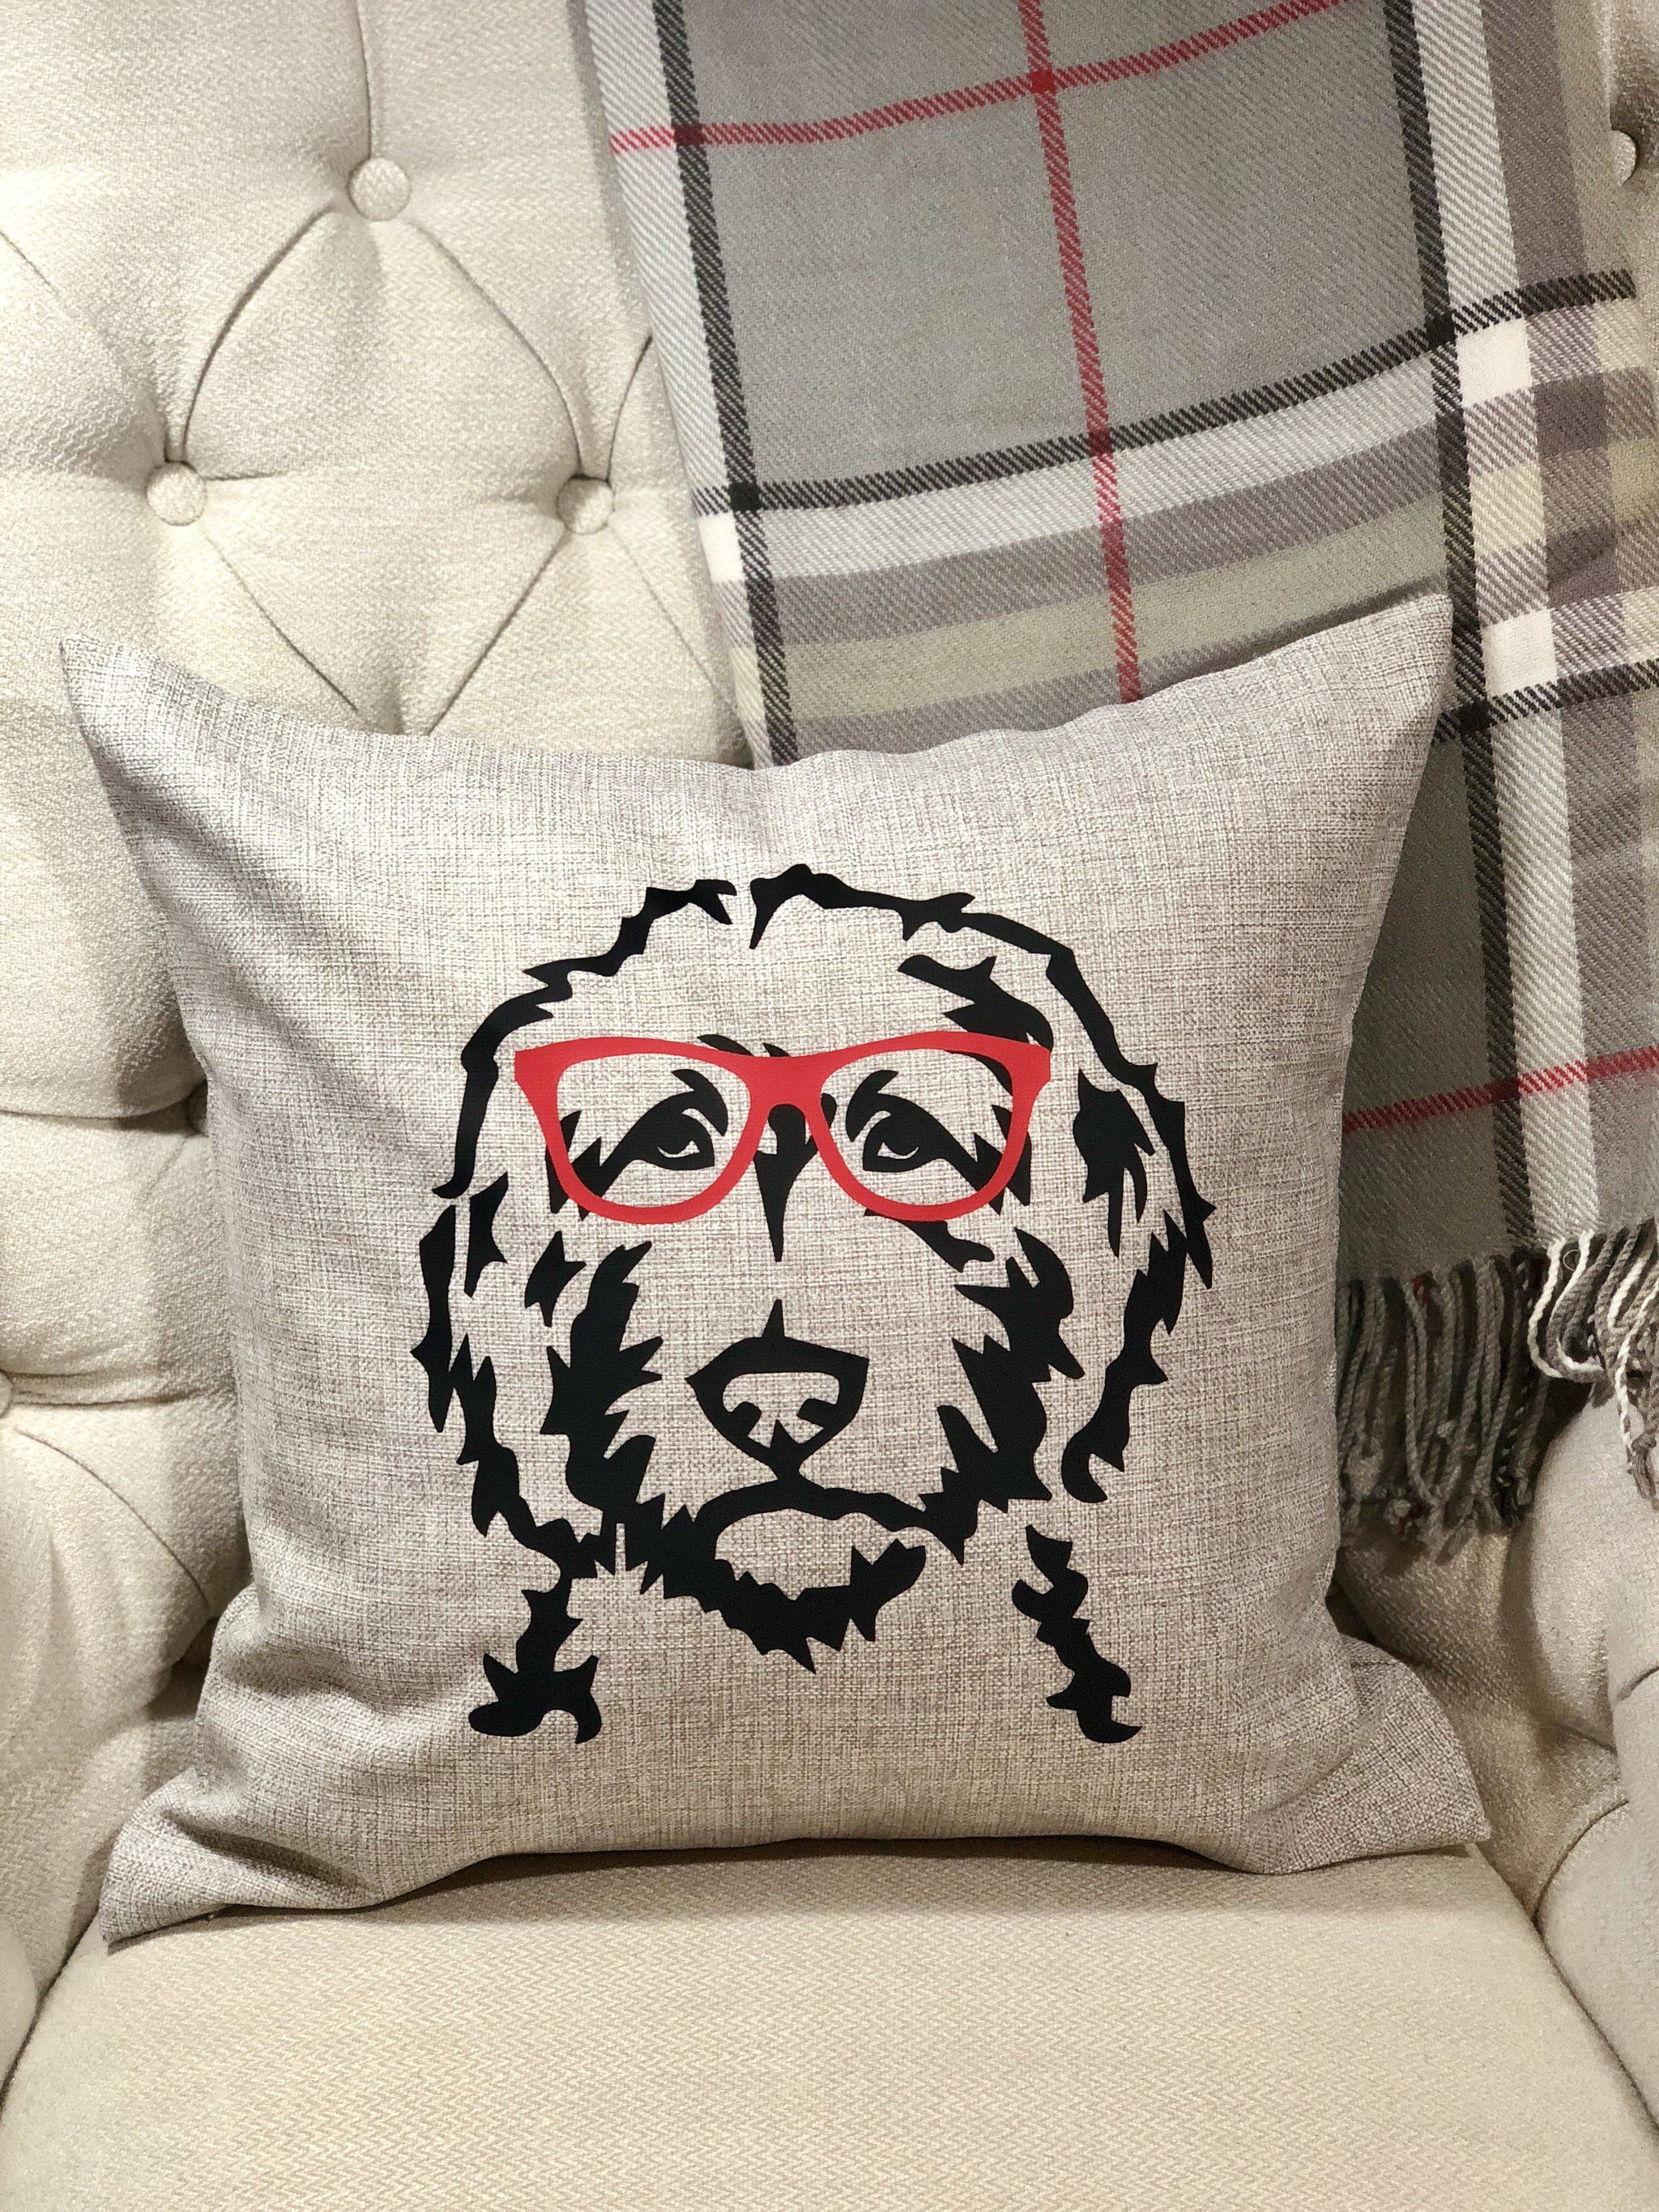 customized doodle face pillow cover bub s and betty s for the